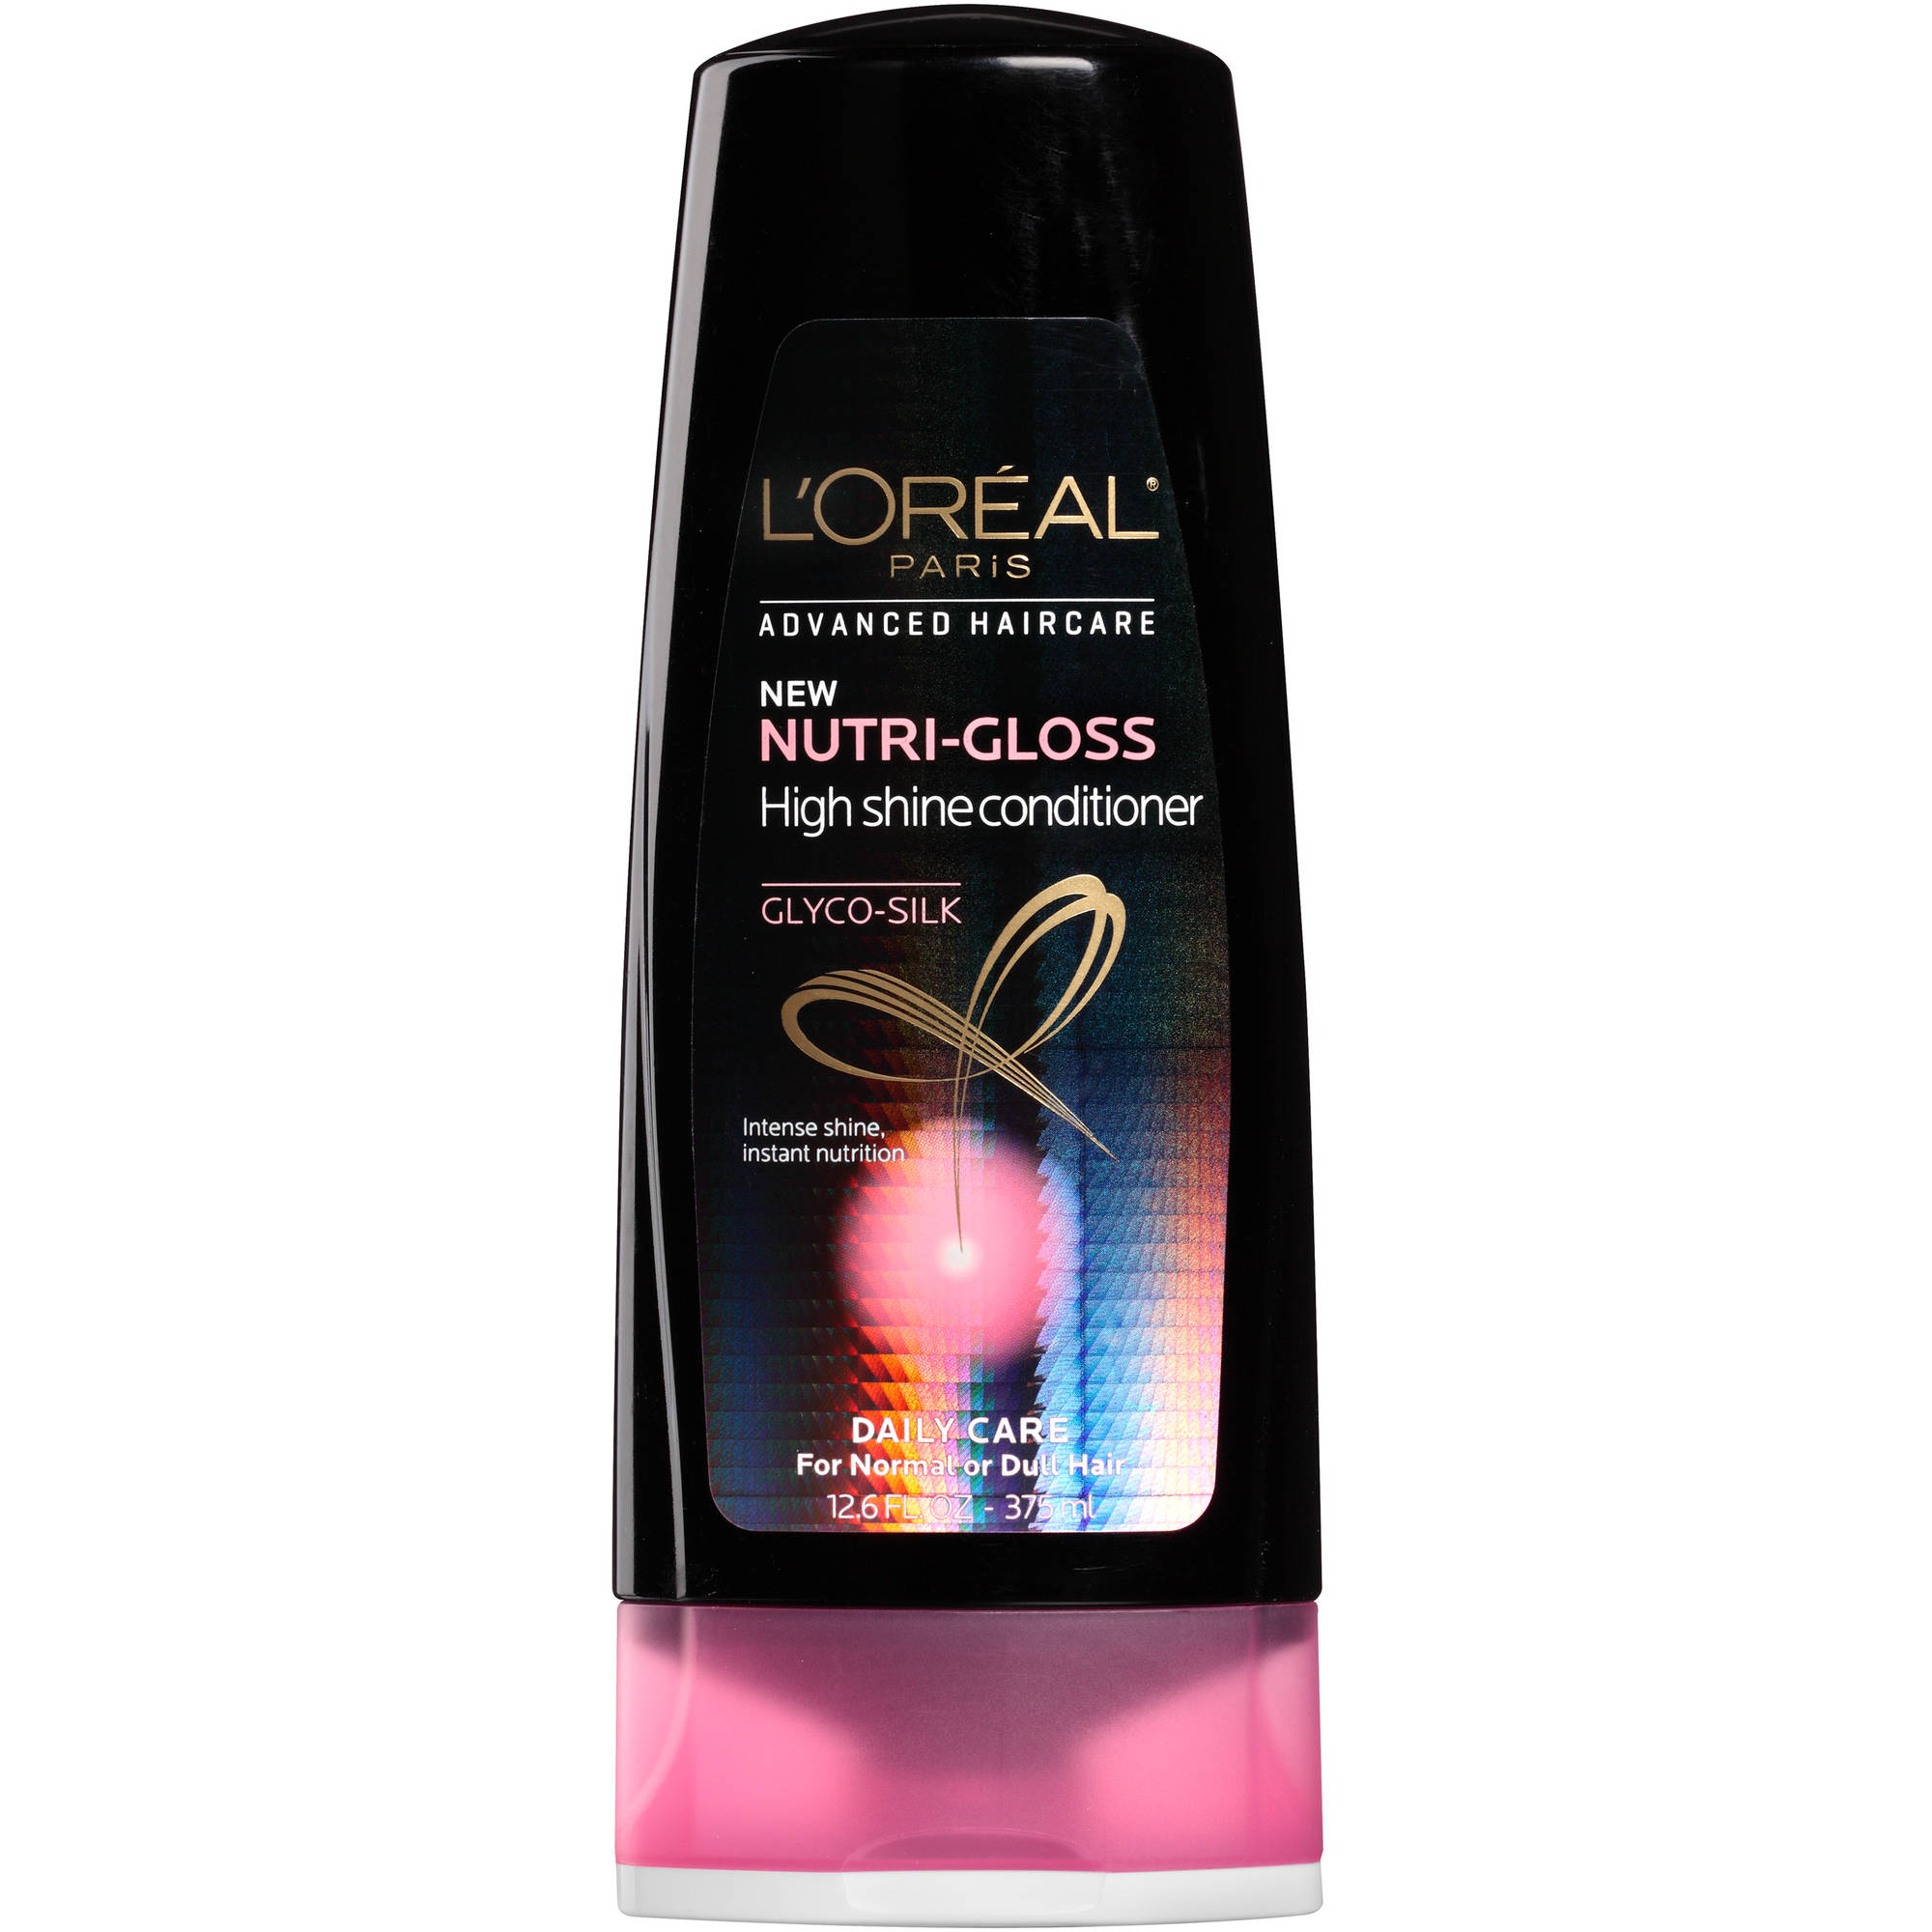 L'Oreal Paris Advanced Haircare Nutri-Gloss High Shine Conditioner, 12.6 fl oz